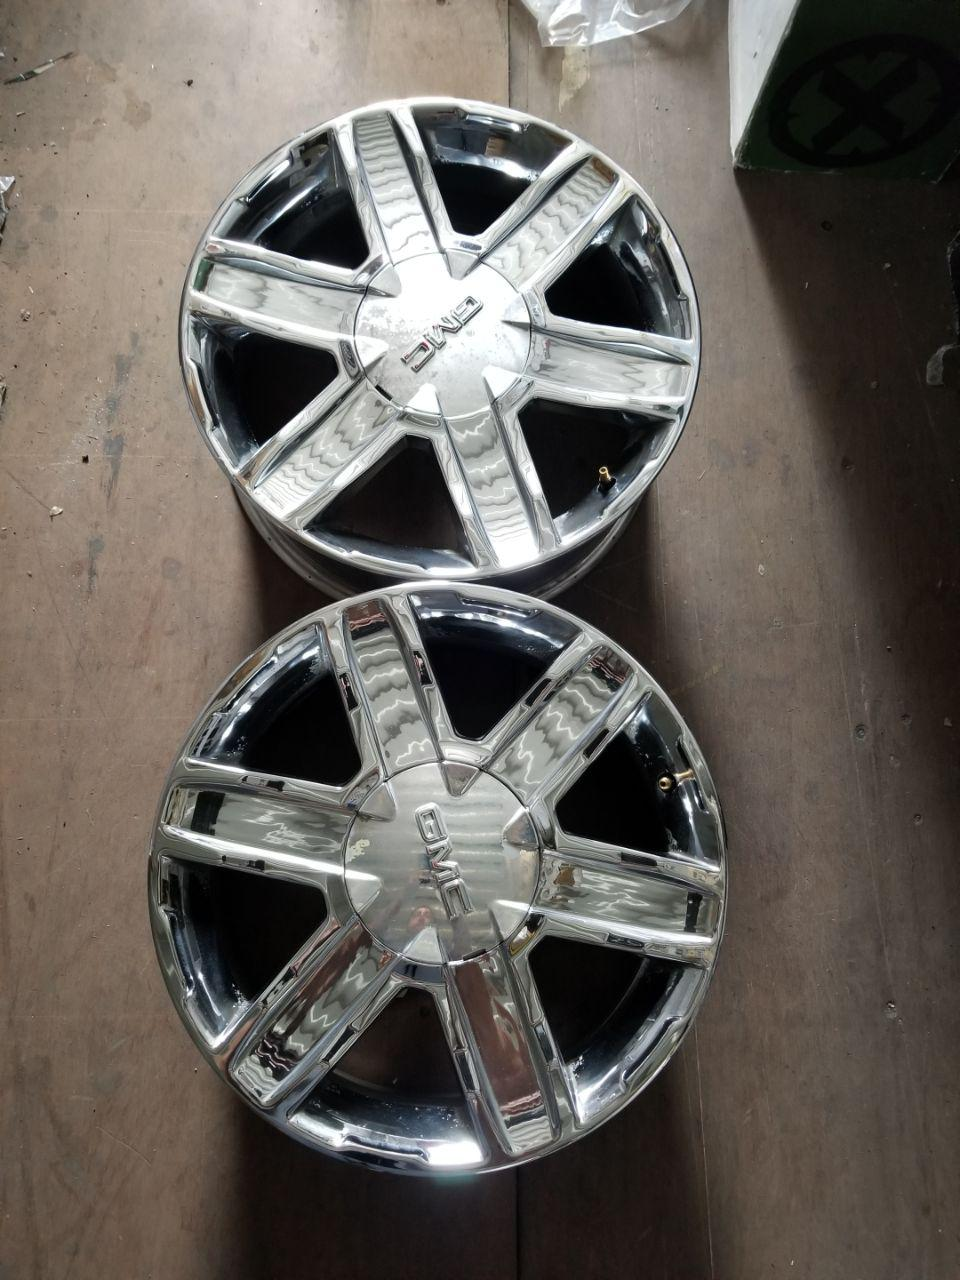 - OEM WHEELS - 2010-2012 GM TERRAIN 17x8 6 SPOKE GROOVE Hollander #5450 /  USED